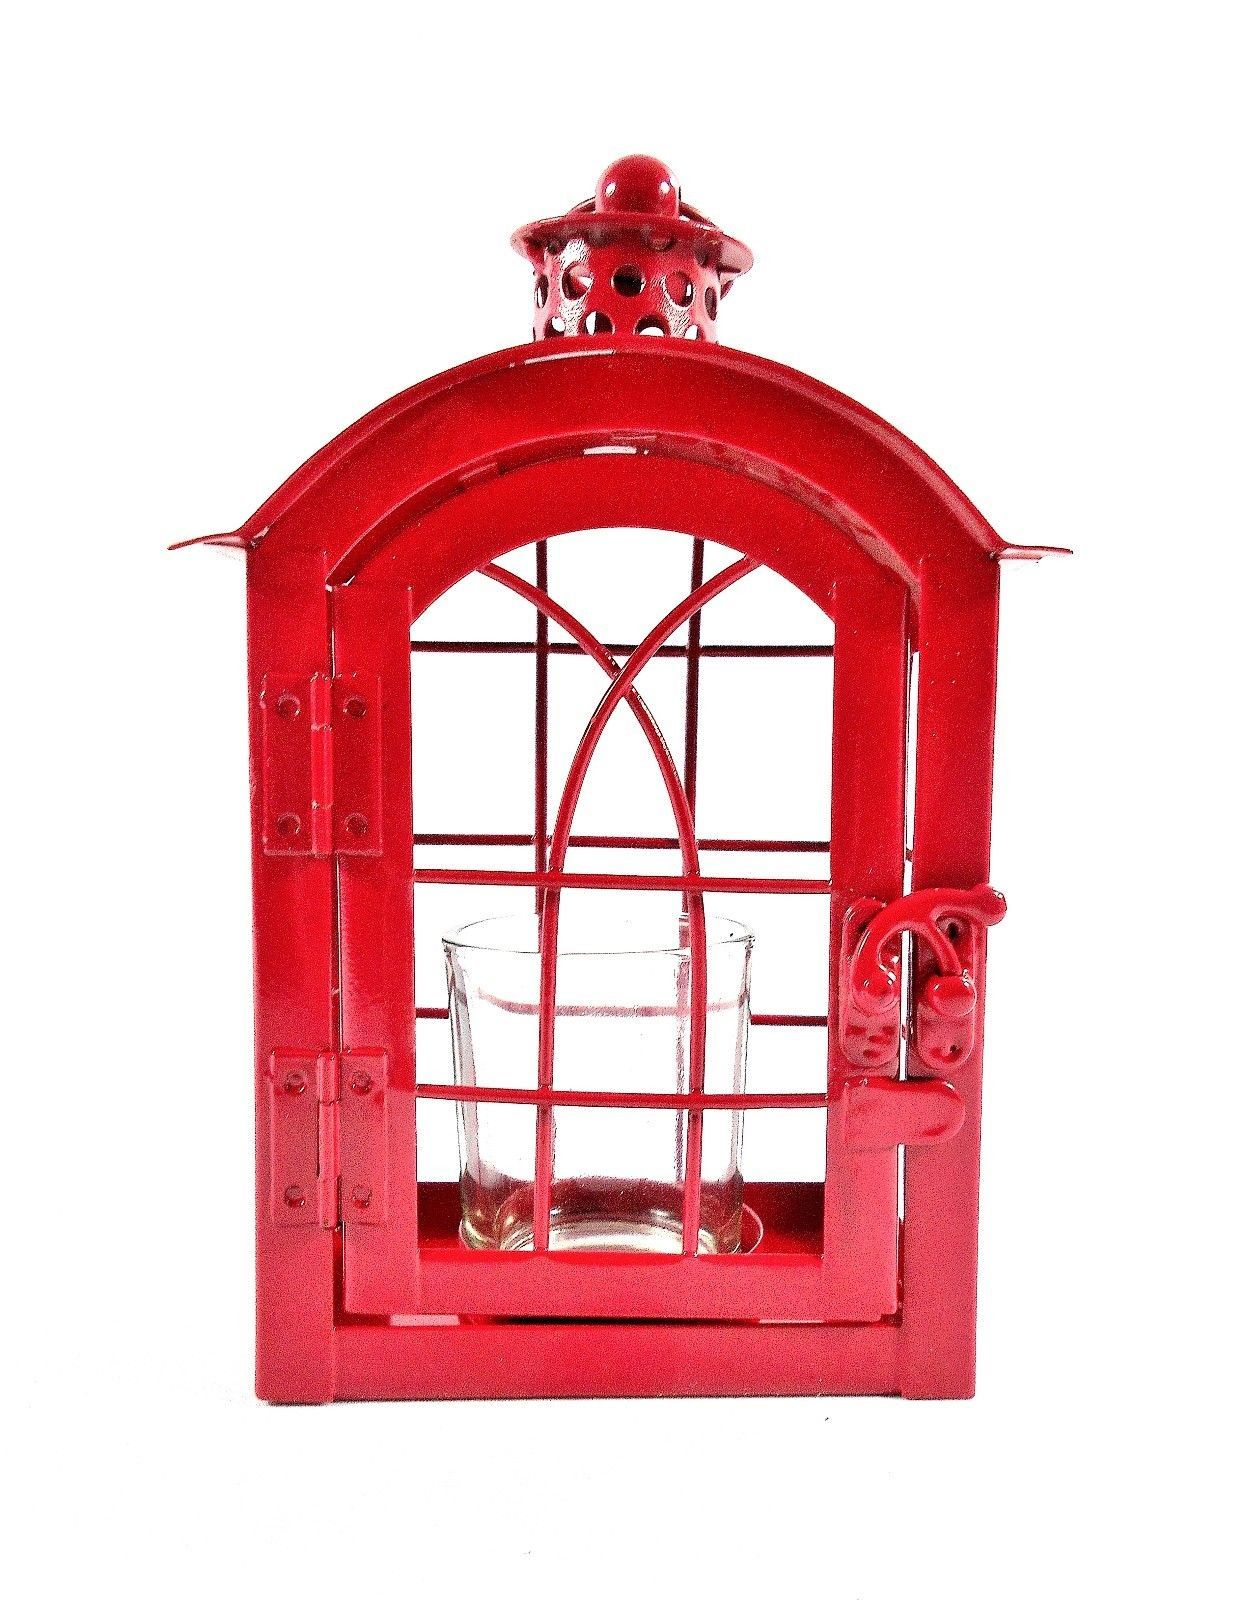 Red Metal Votive Candle Lantern w/Glass Candle Cup - Boho-Chic Candle Lantern image 4